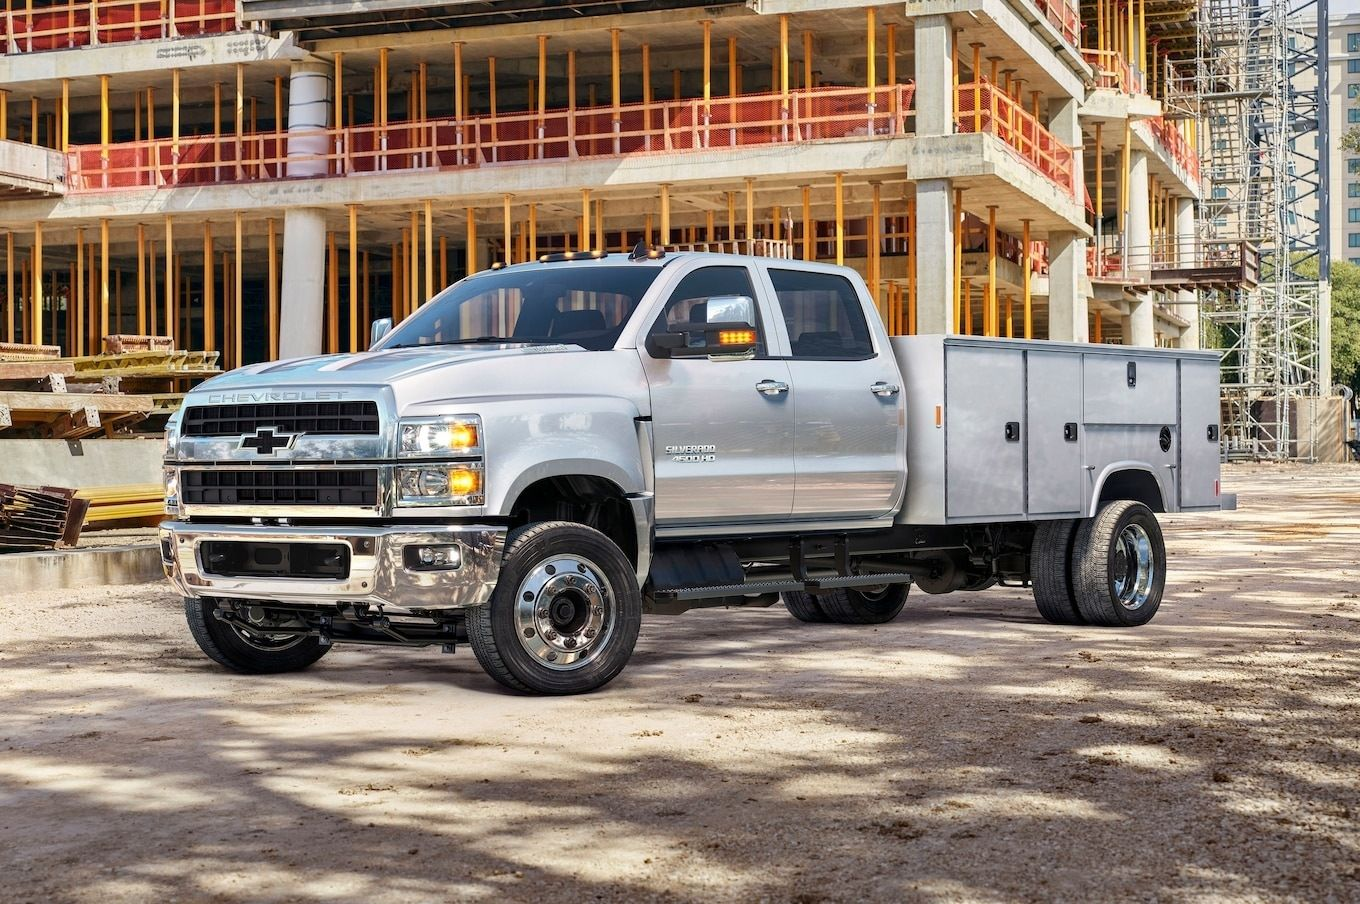 2020 Gmc 6500 Body Styles Chevrolet Silverado Gmc Trucks Silverado Hd